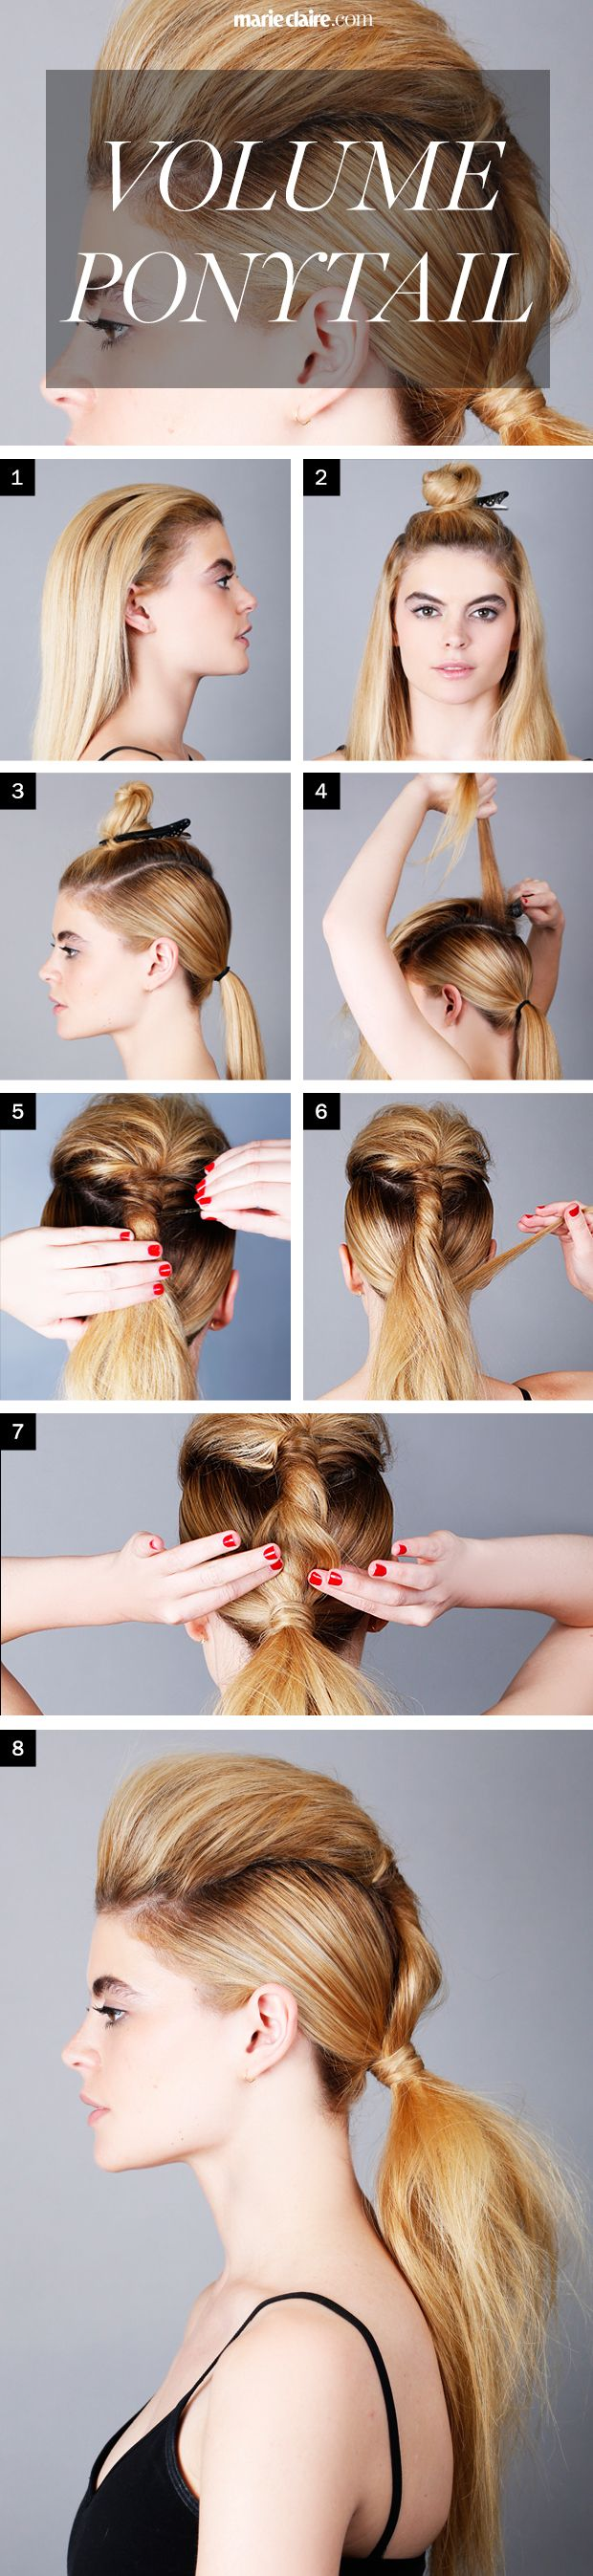 Hair How-To: A Badass Volume Ponytail  - MarieClaire.com